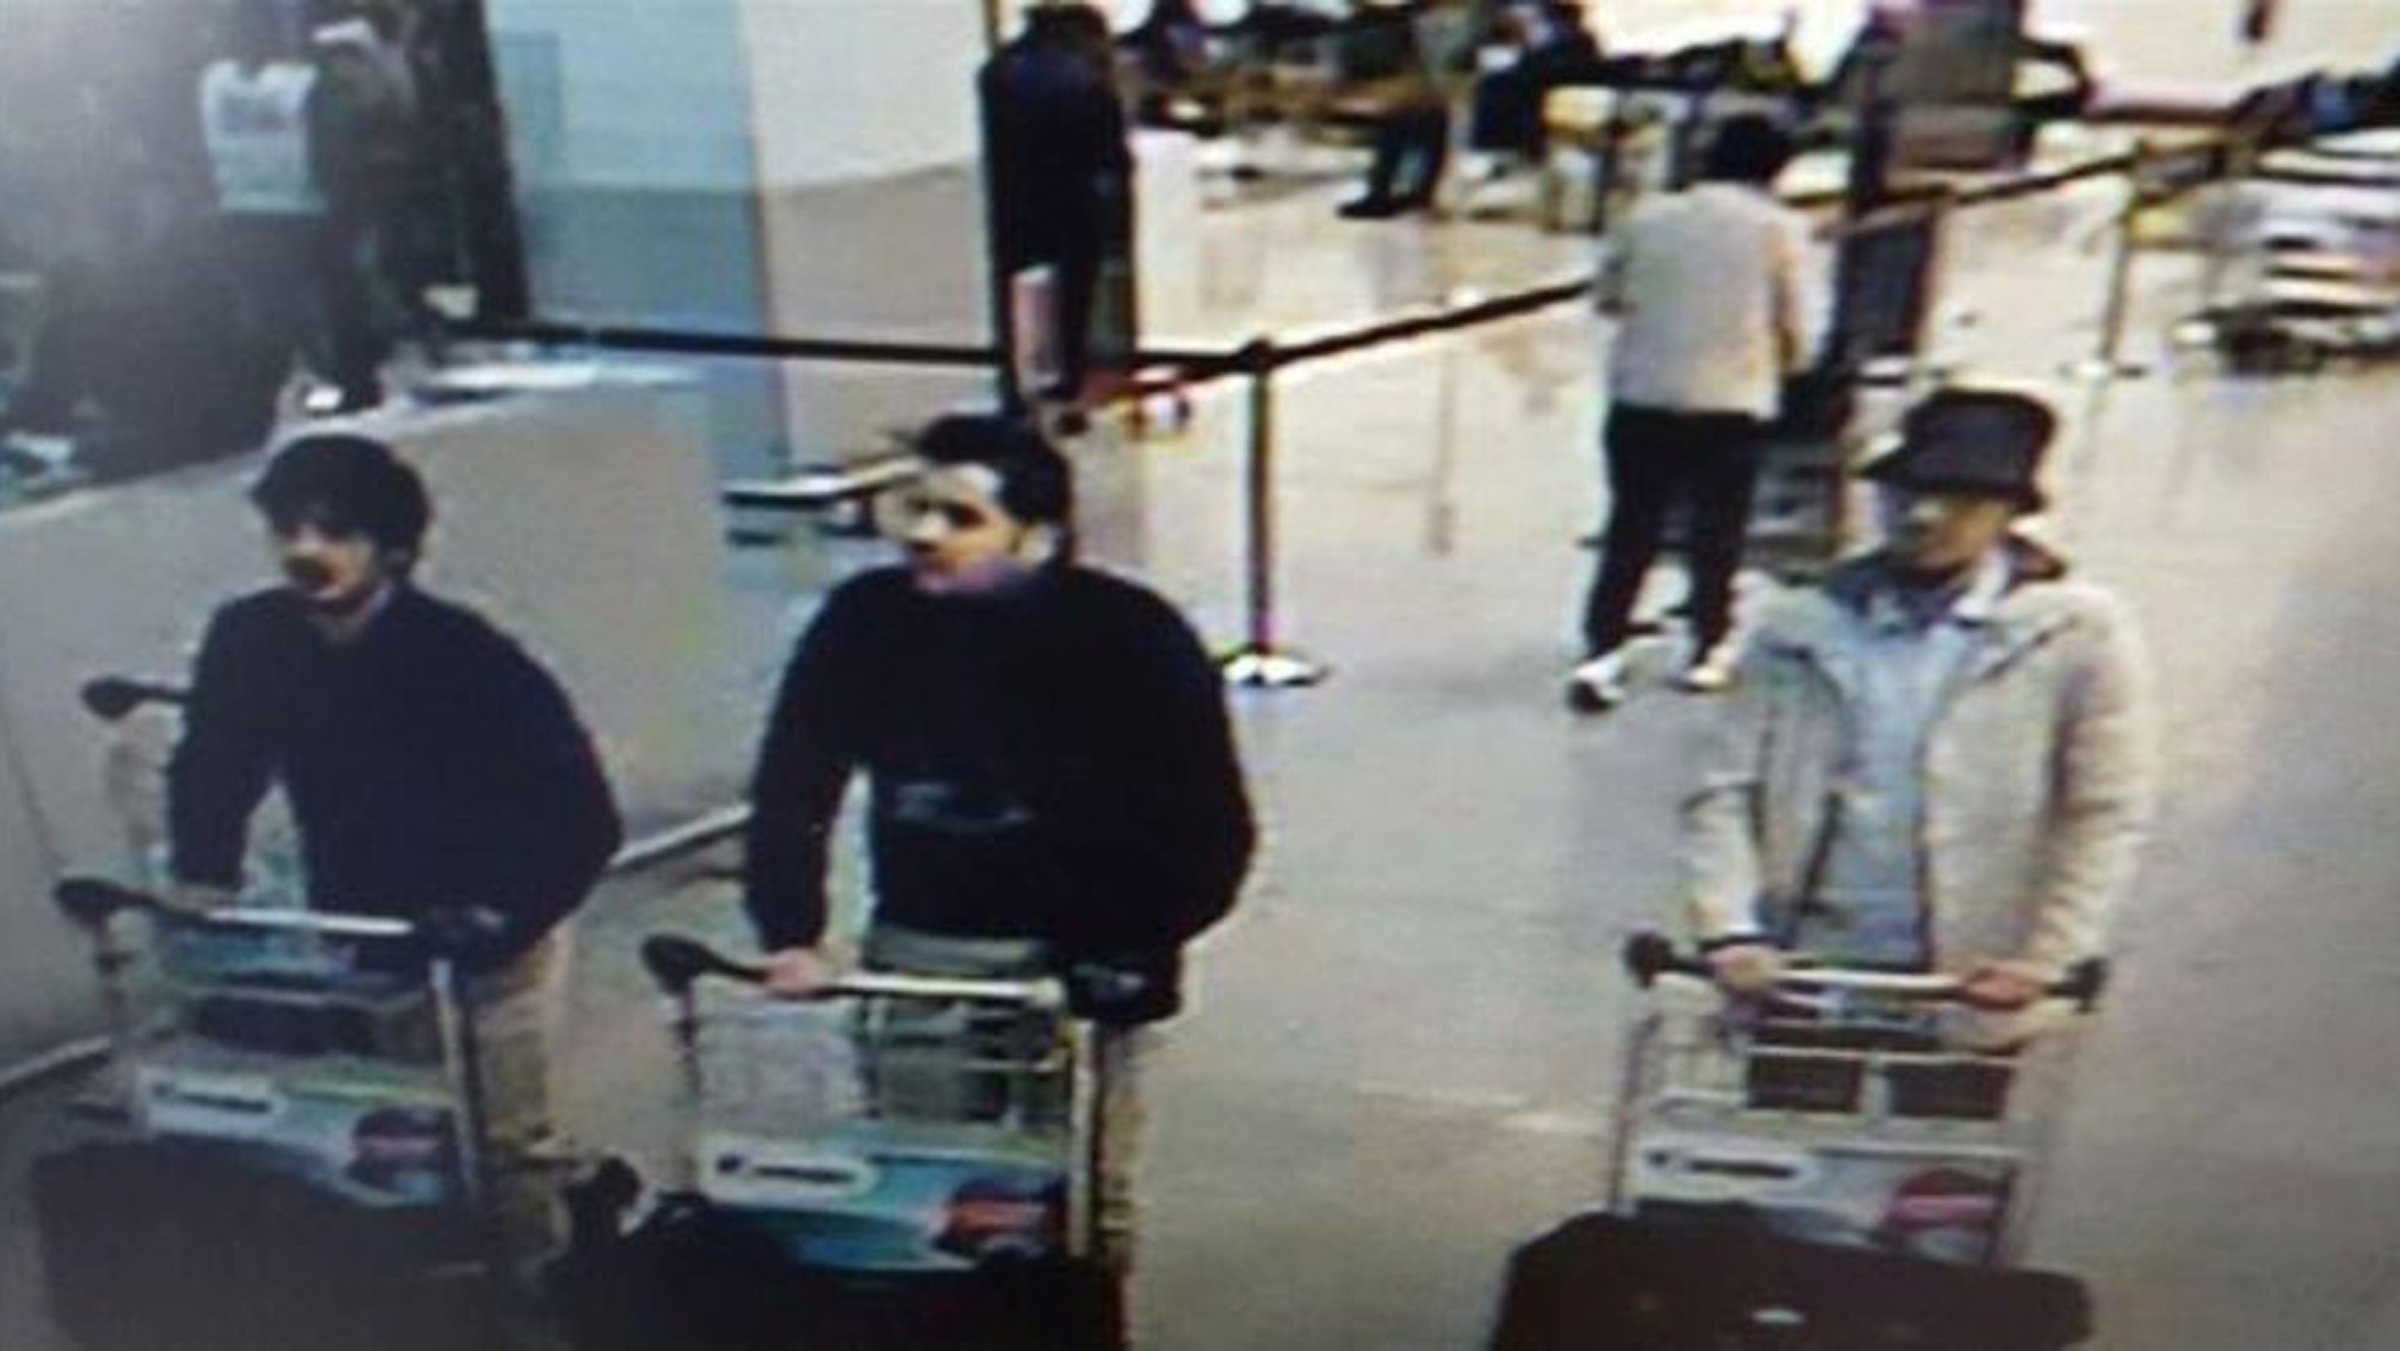 This image provided by the Belgian Federal Police in Brussels on Tuesday, March 22, 2016 shows men who are suspected of taking part in the attacks at Belgium's Zaventem Airport. The man at right is still being sought by the police and two others in the photo that the police issued were according to a the Belgian Prosecutors 'probably' suicide bombers.